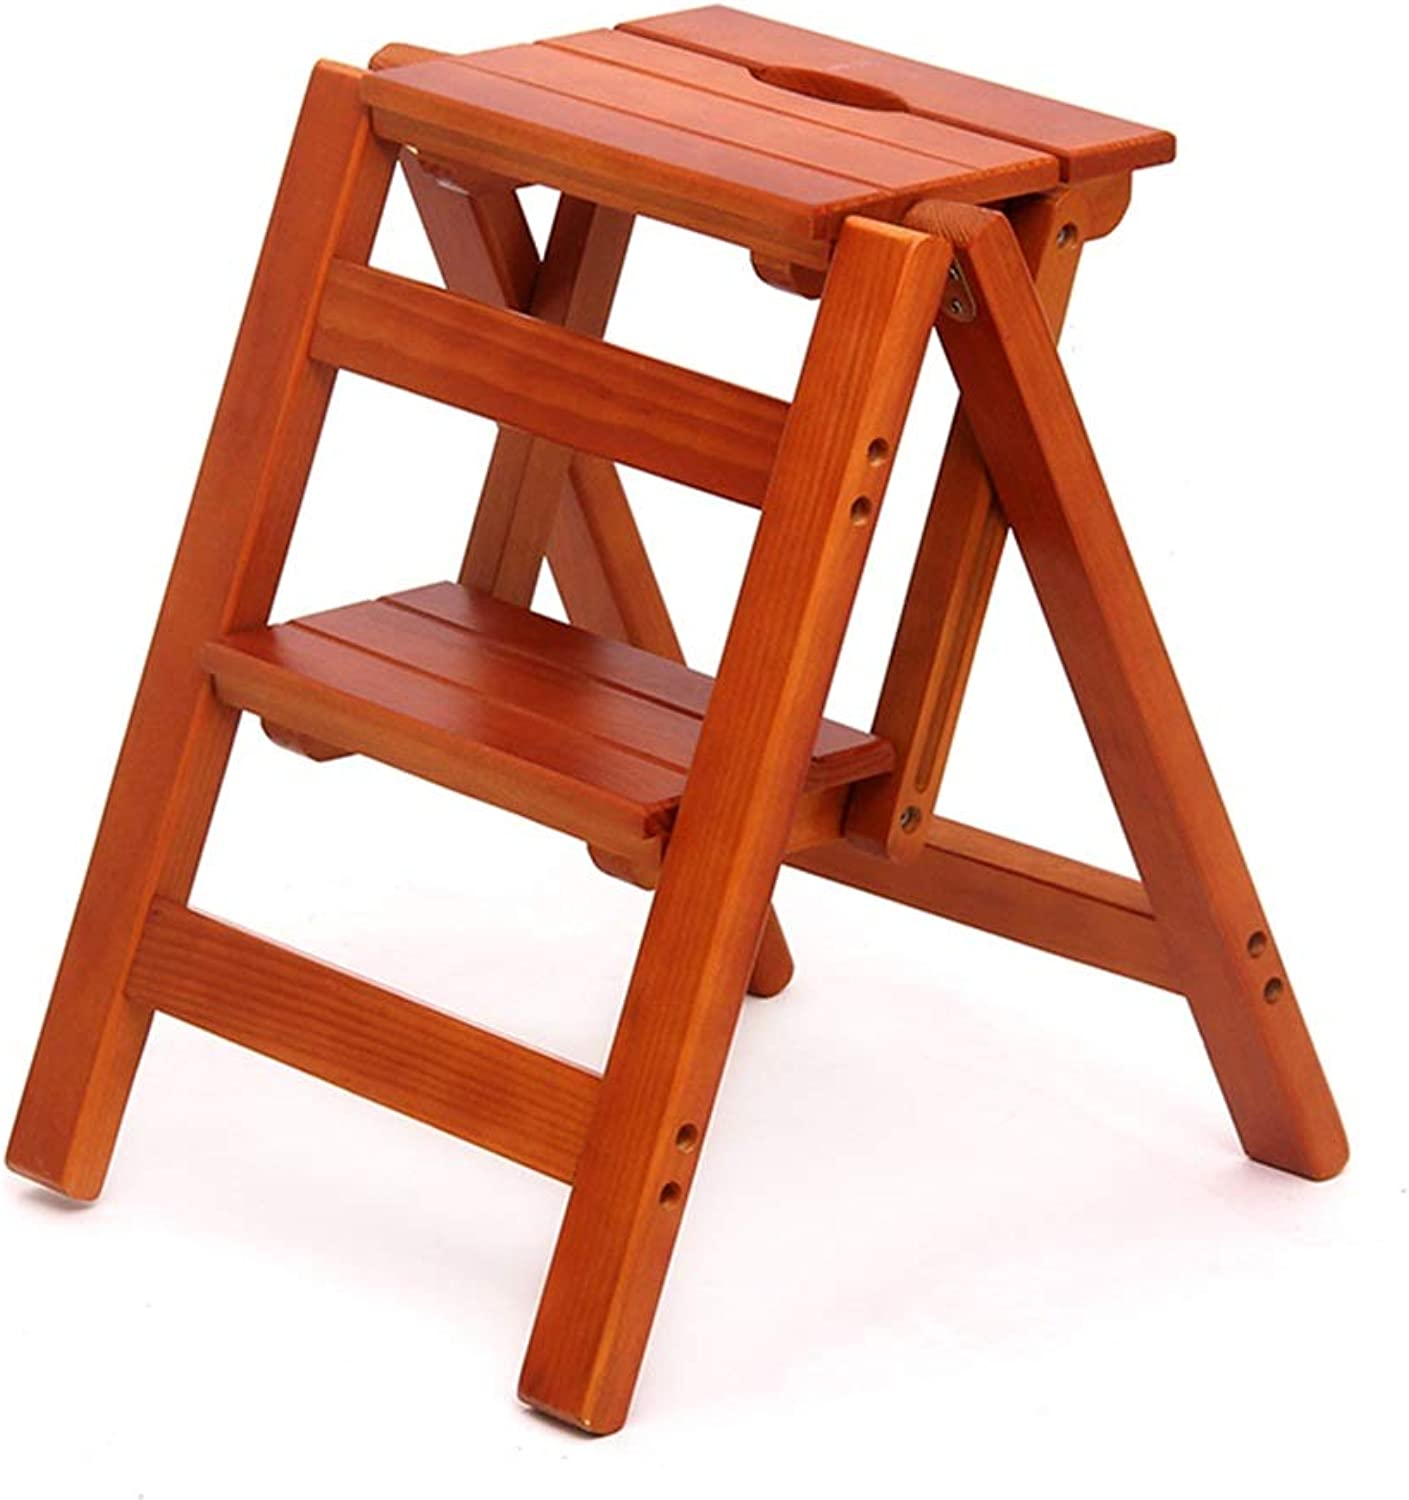 Bookcase Ladders Practical Step Stool Home Two-Step Ladder Folding Multi-Function Stair Chair Indoor Climbing Ladder Simple Wooden Ladder Stool Free Inssizetion Folding Solid Wood Ladder